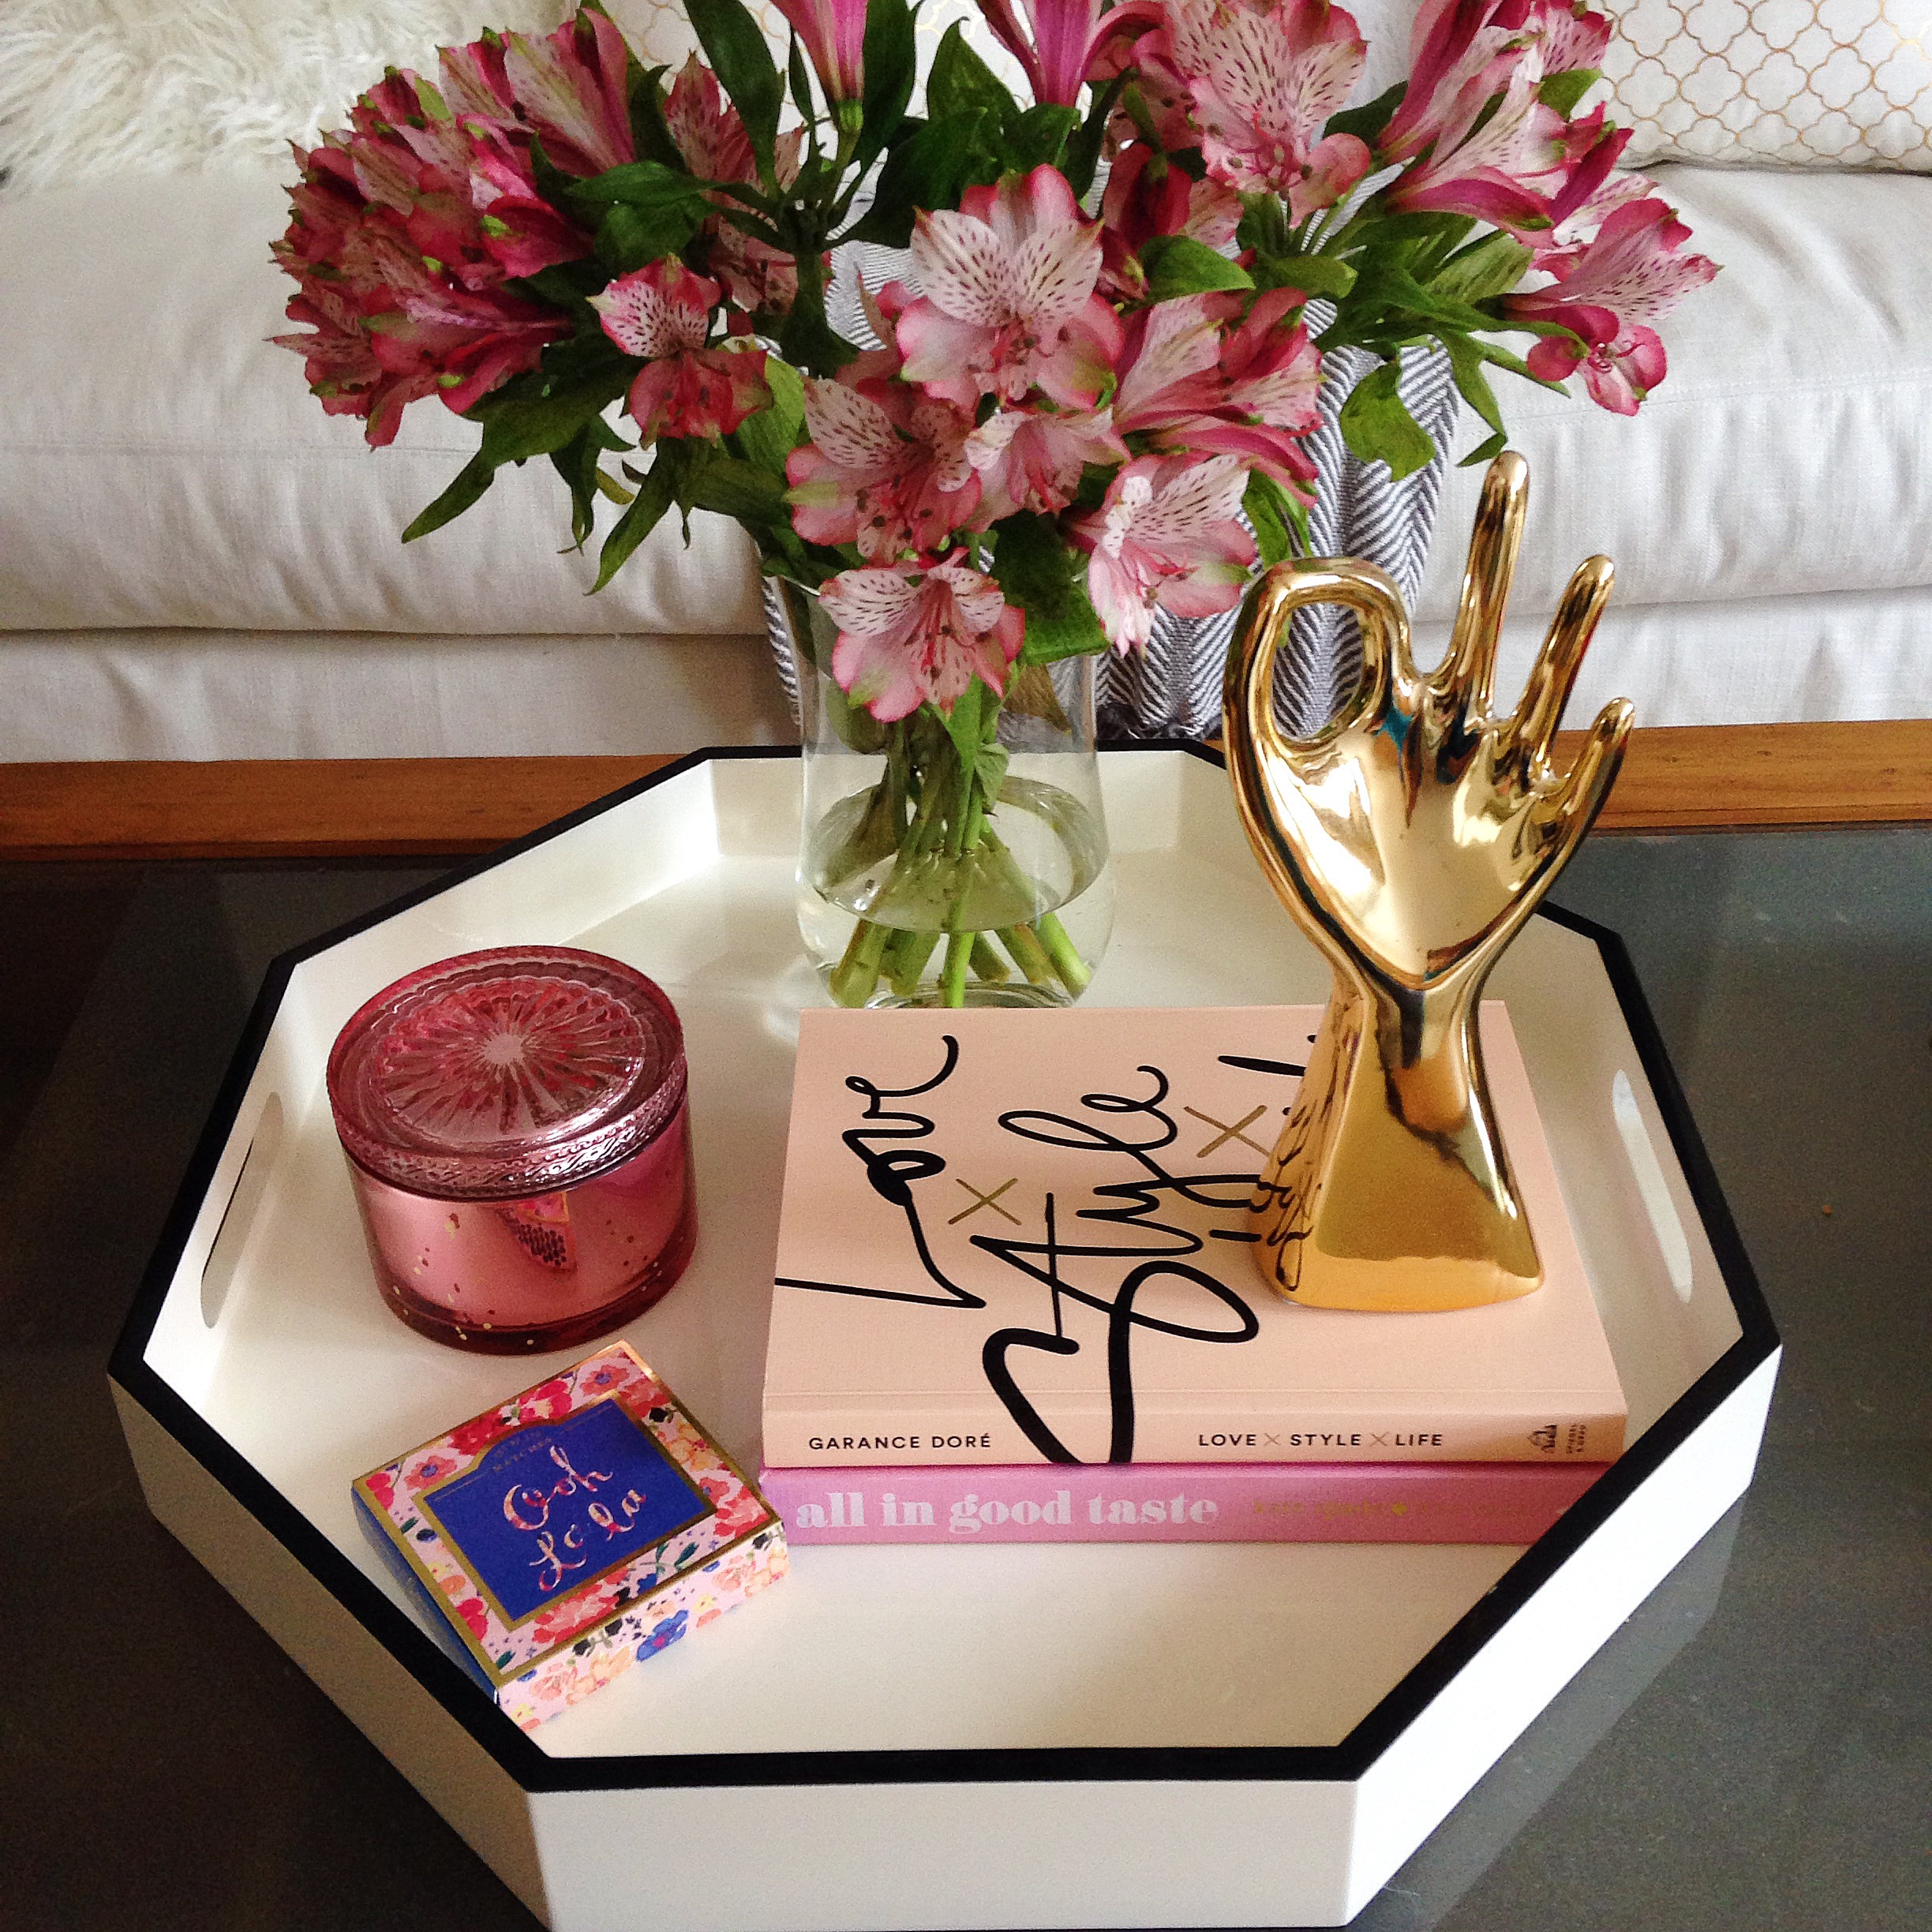 Another great way to add color is by grouping colorful decor items in trays.